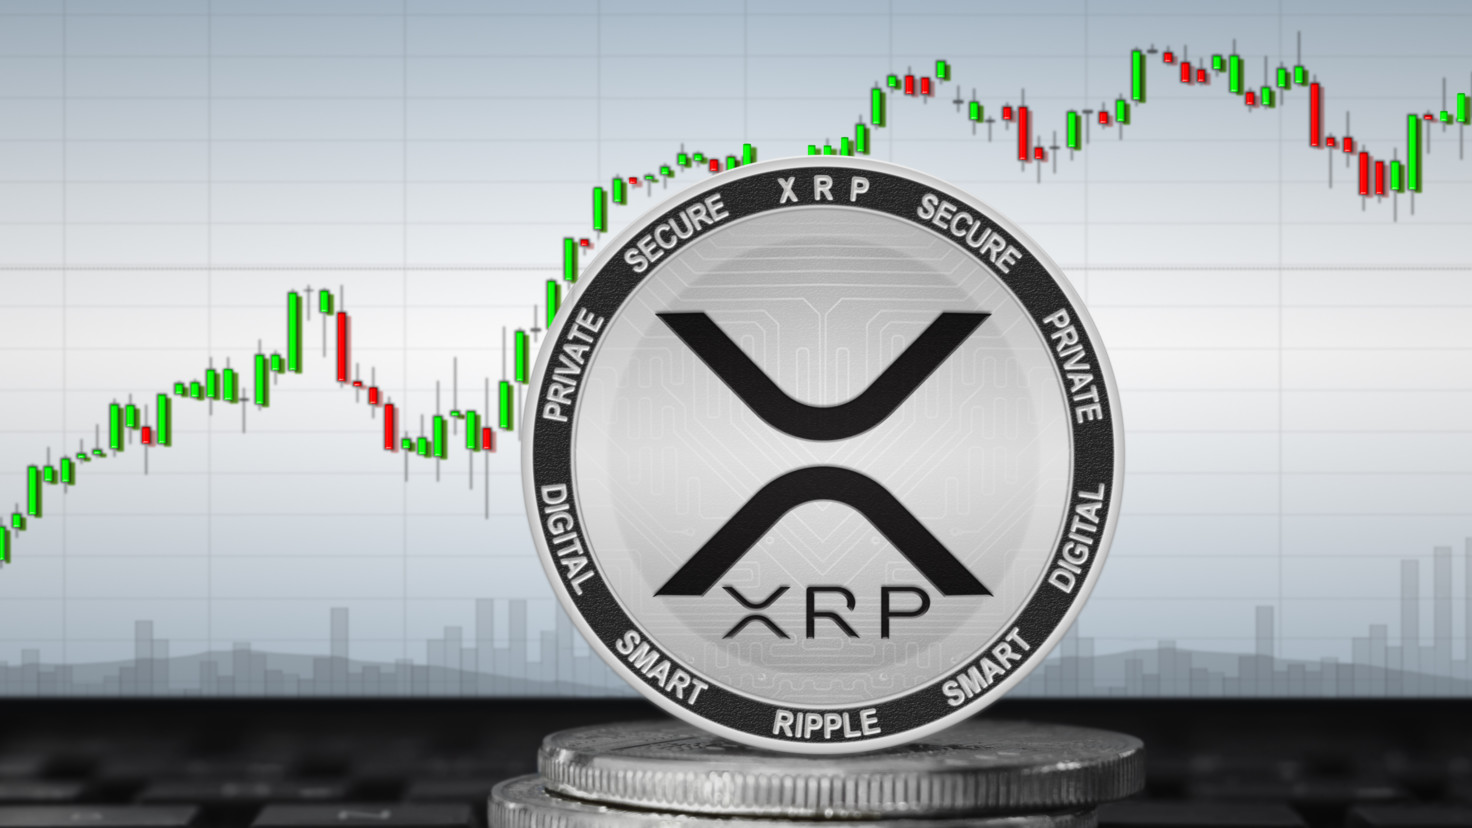 analyst-claims-xrp-price-is-setting-up-for-a-big-push-higher